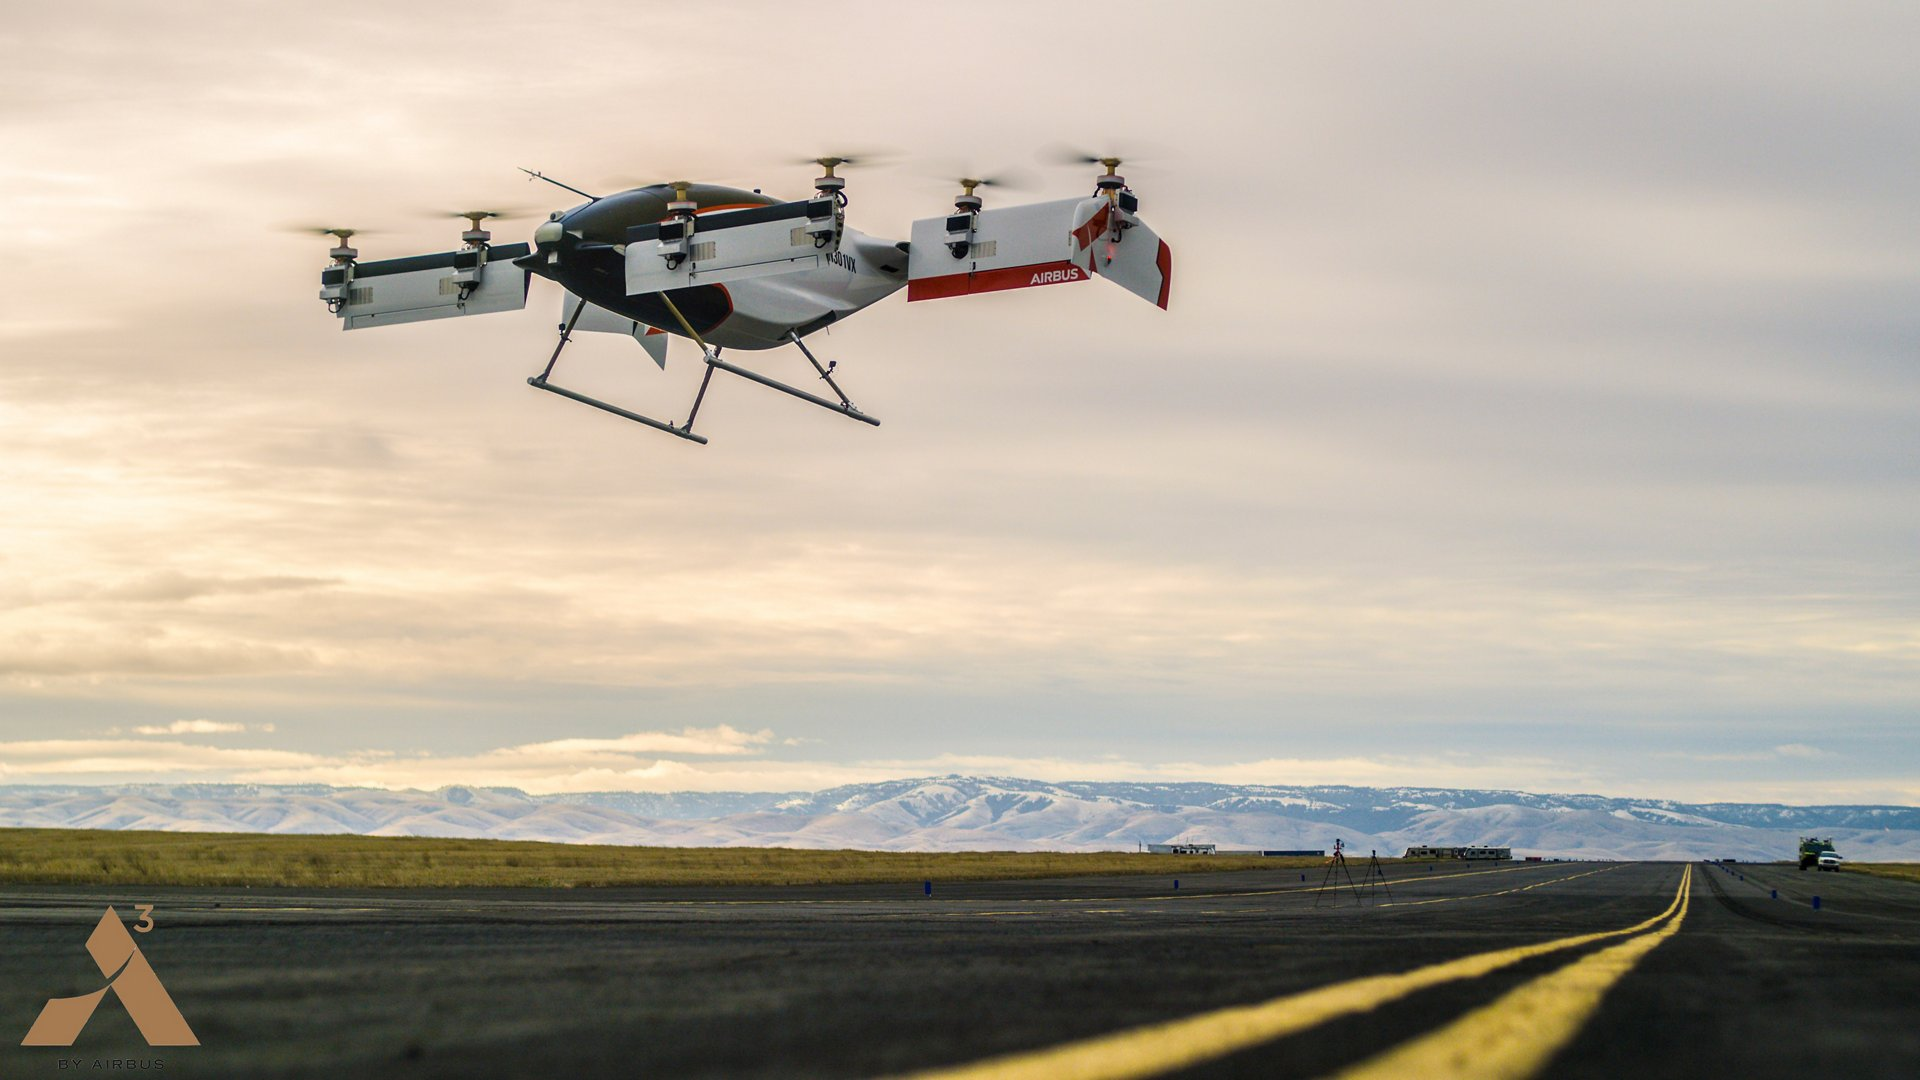 Airbus's First Flying Car Had a Successful Flight But It's Not Ready For Prime Time Just Yet